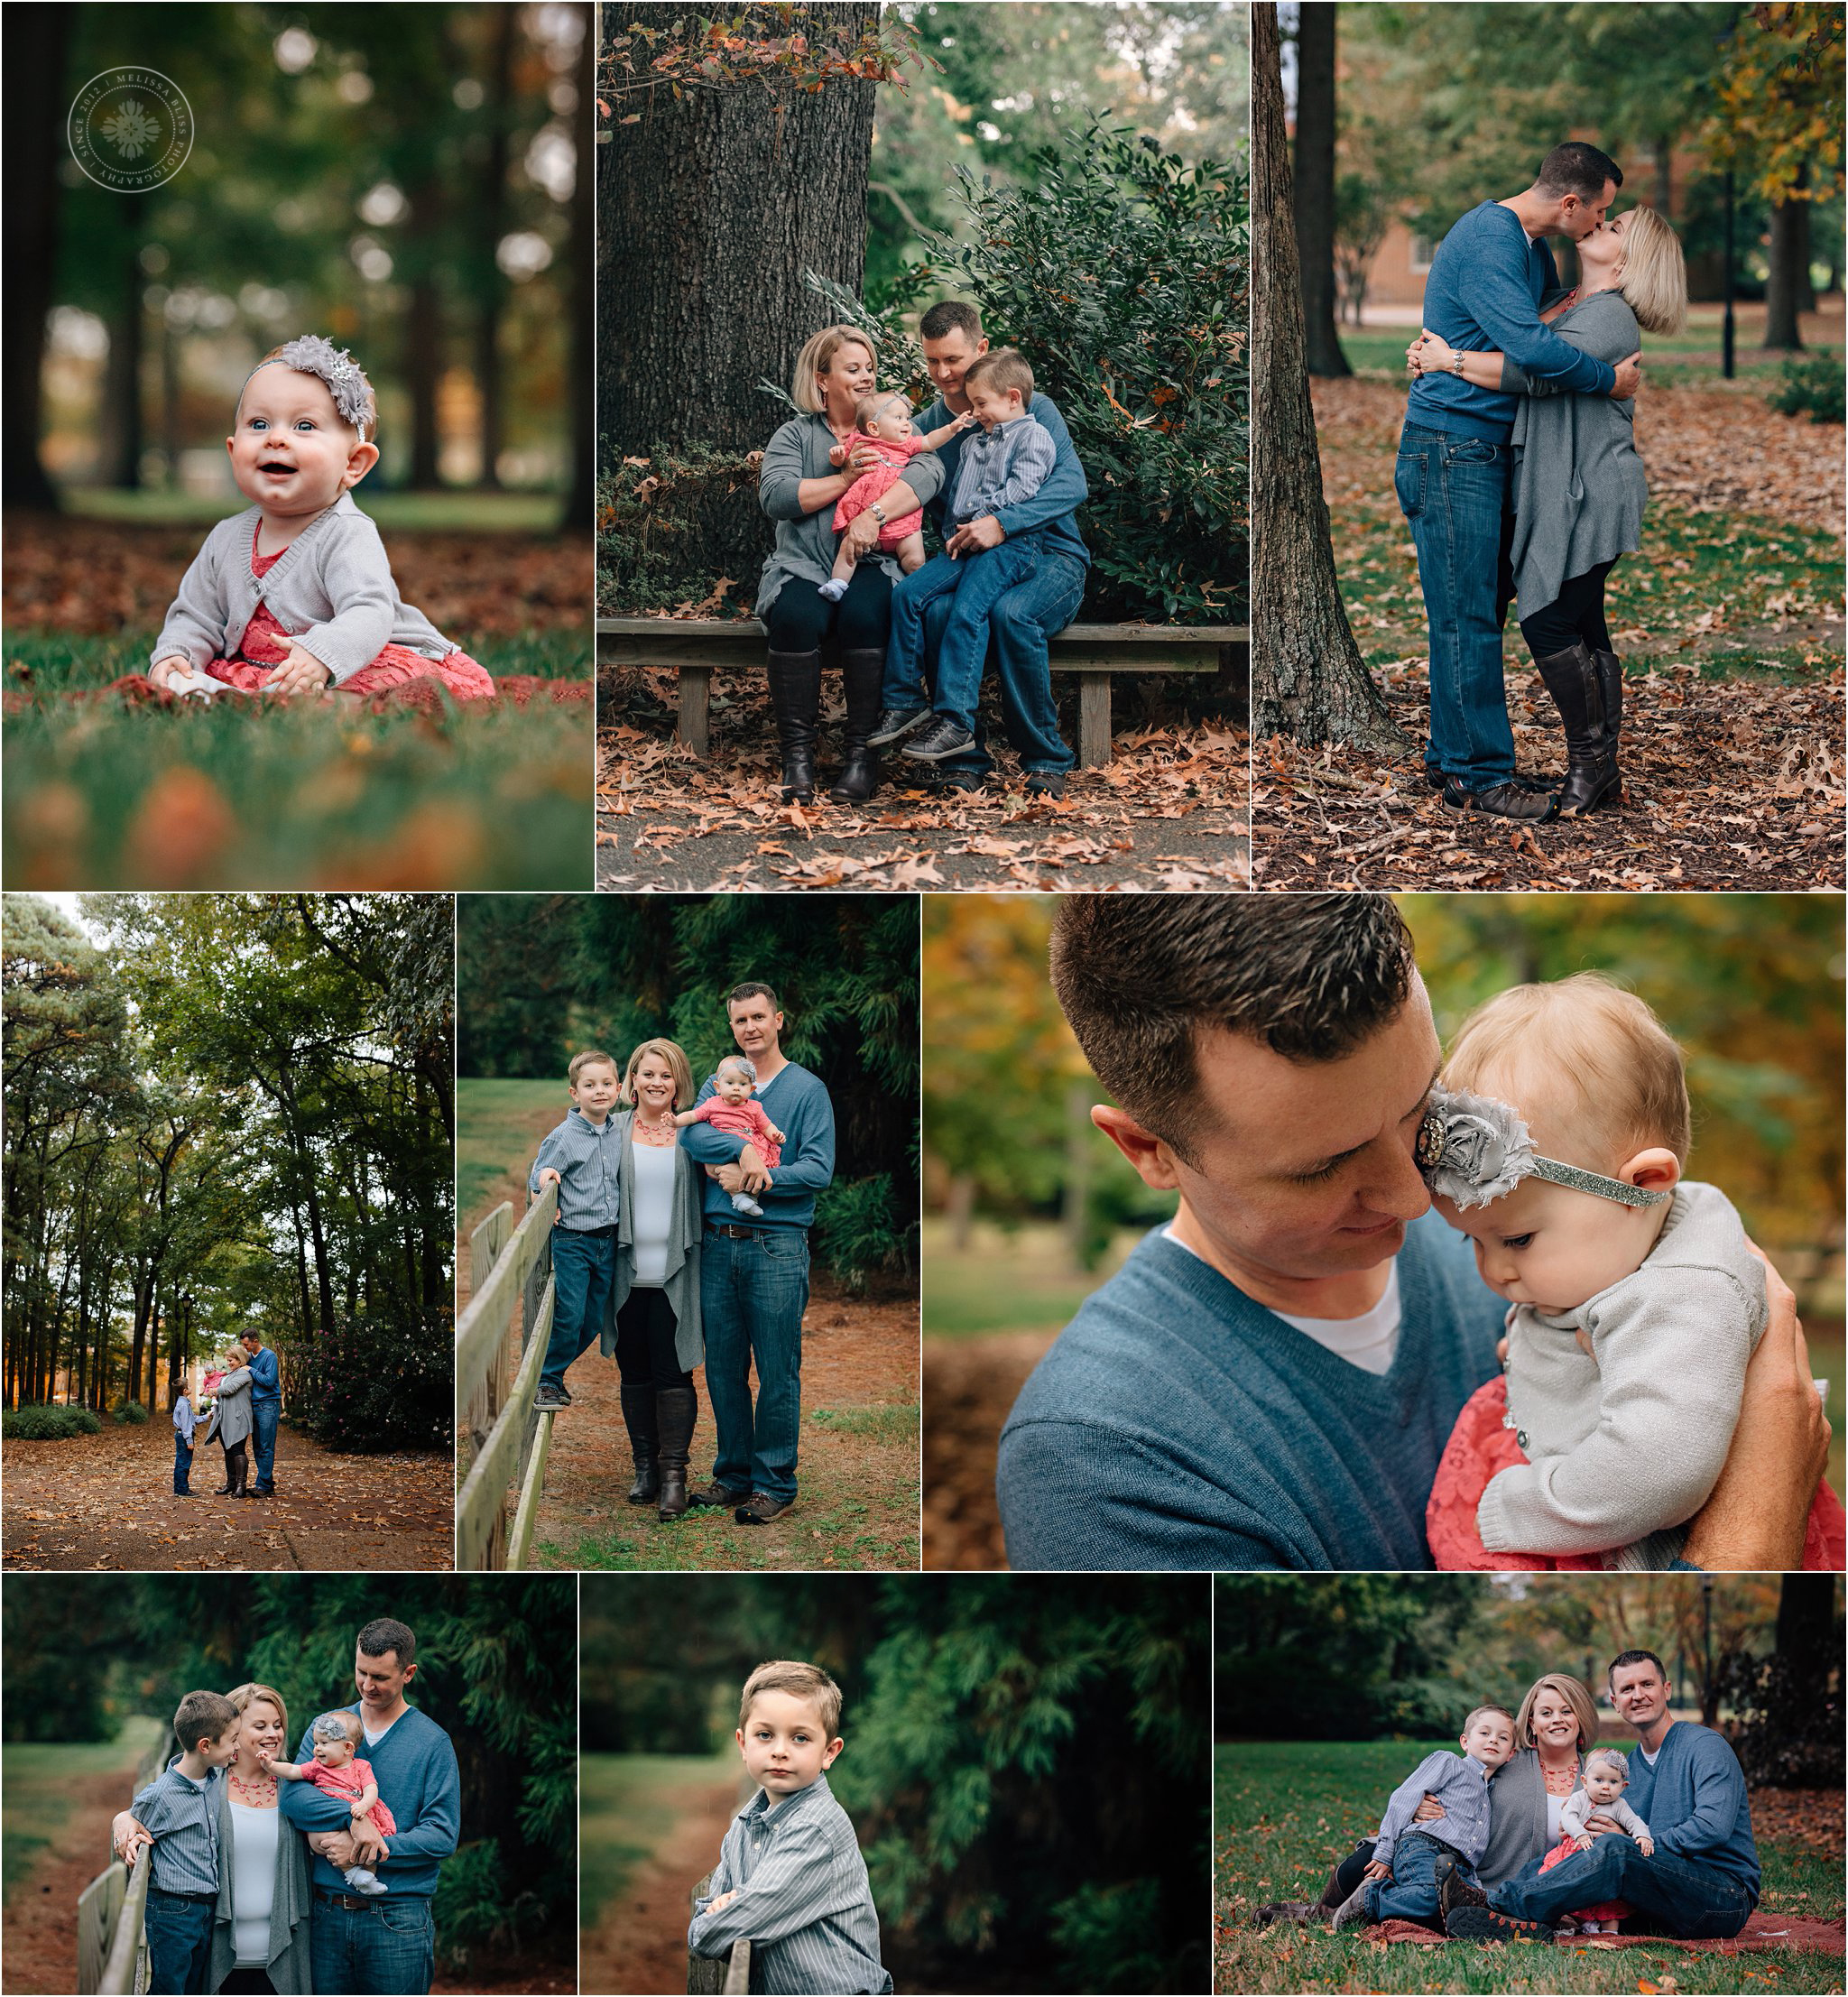 virginia-beach-family-photos-melissa-bliss-photography-regent-university-family-session.jpg